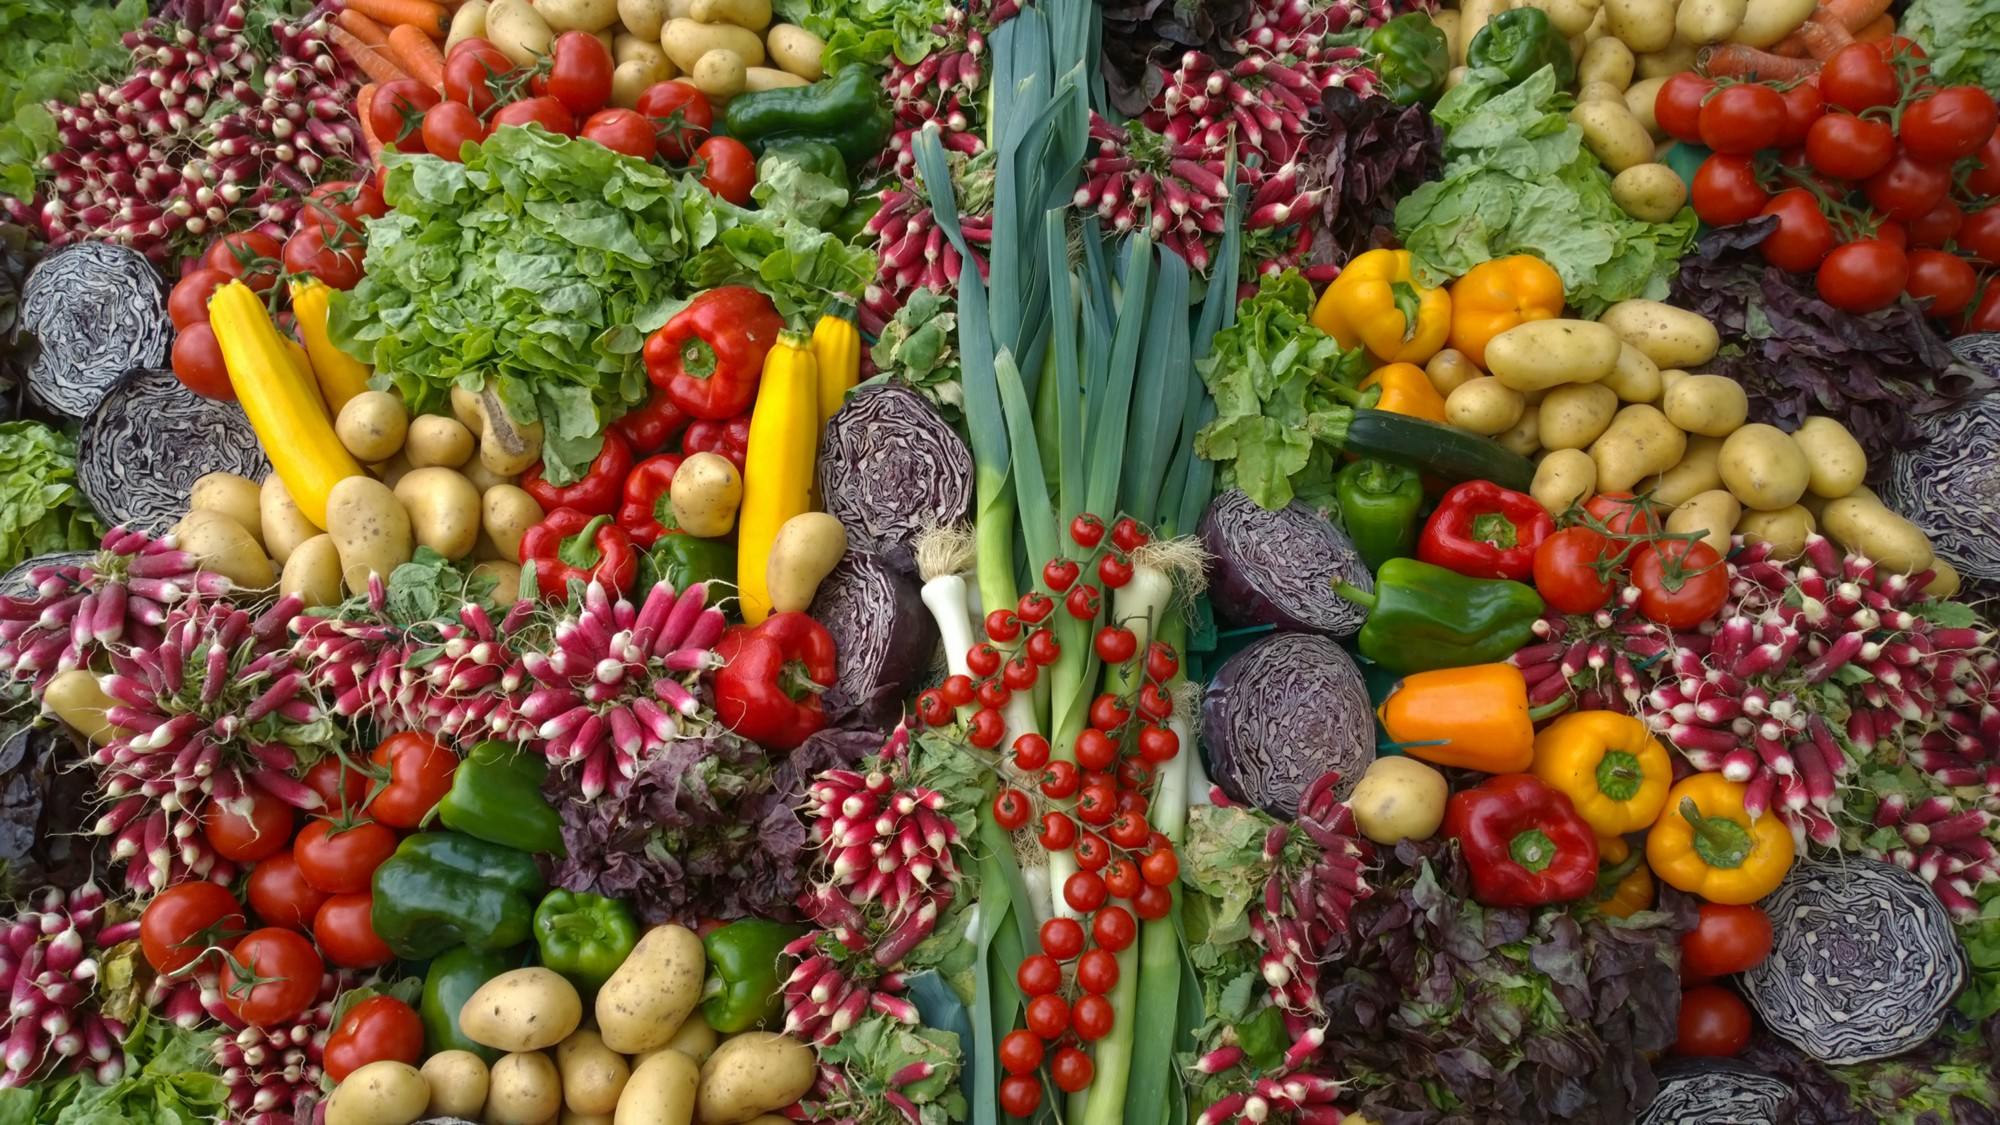 A huge variety of colorful vegetables, such as bell peppers, red cabbage, radishes, leeks, and yellow squash.